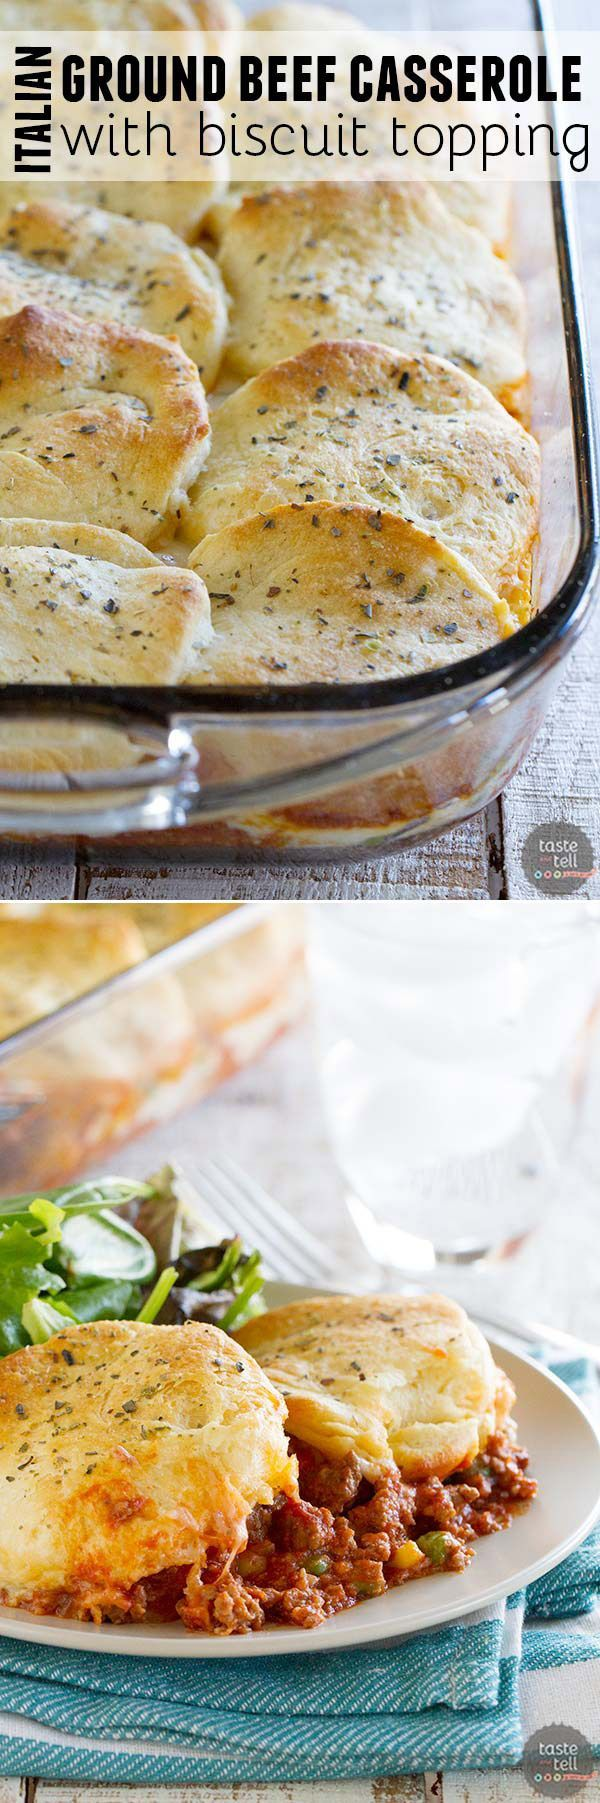 Hearty, filling, and family-friendly, this Italian Ground Beef Casserole with Biscuit Topping is the perfect answer for an easy weeknight dinner.: